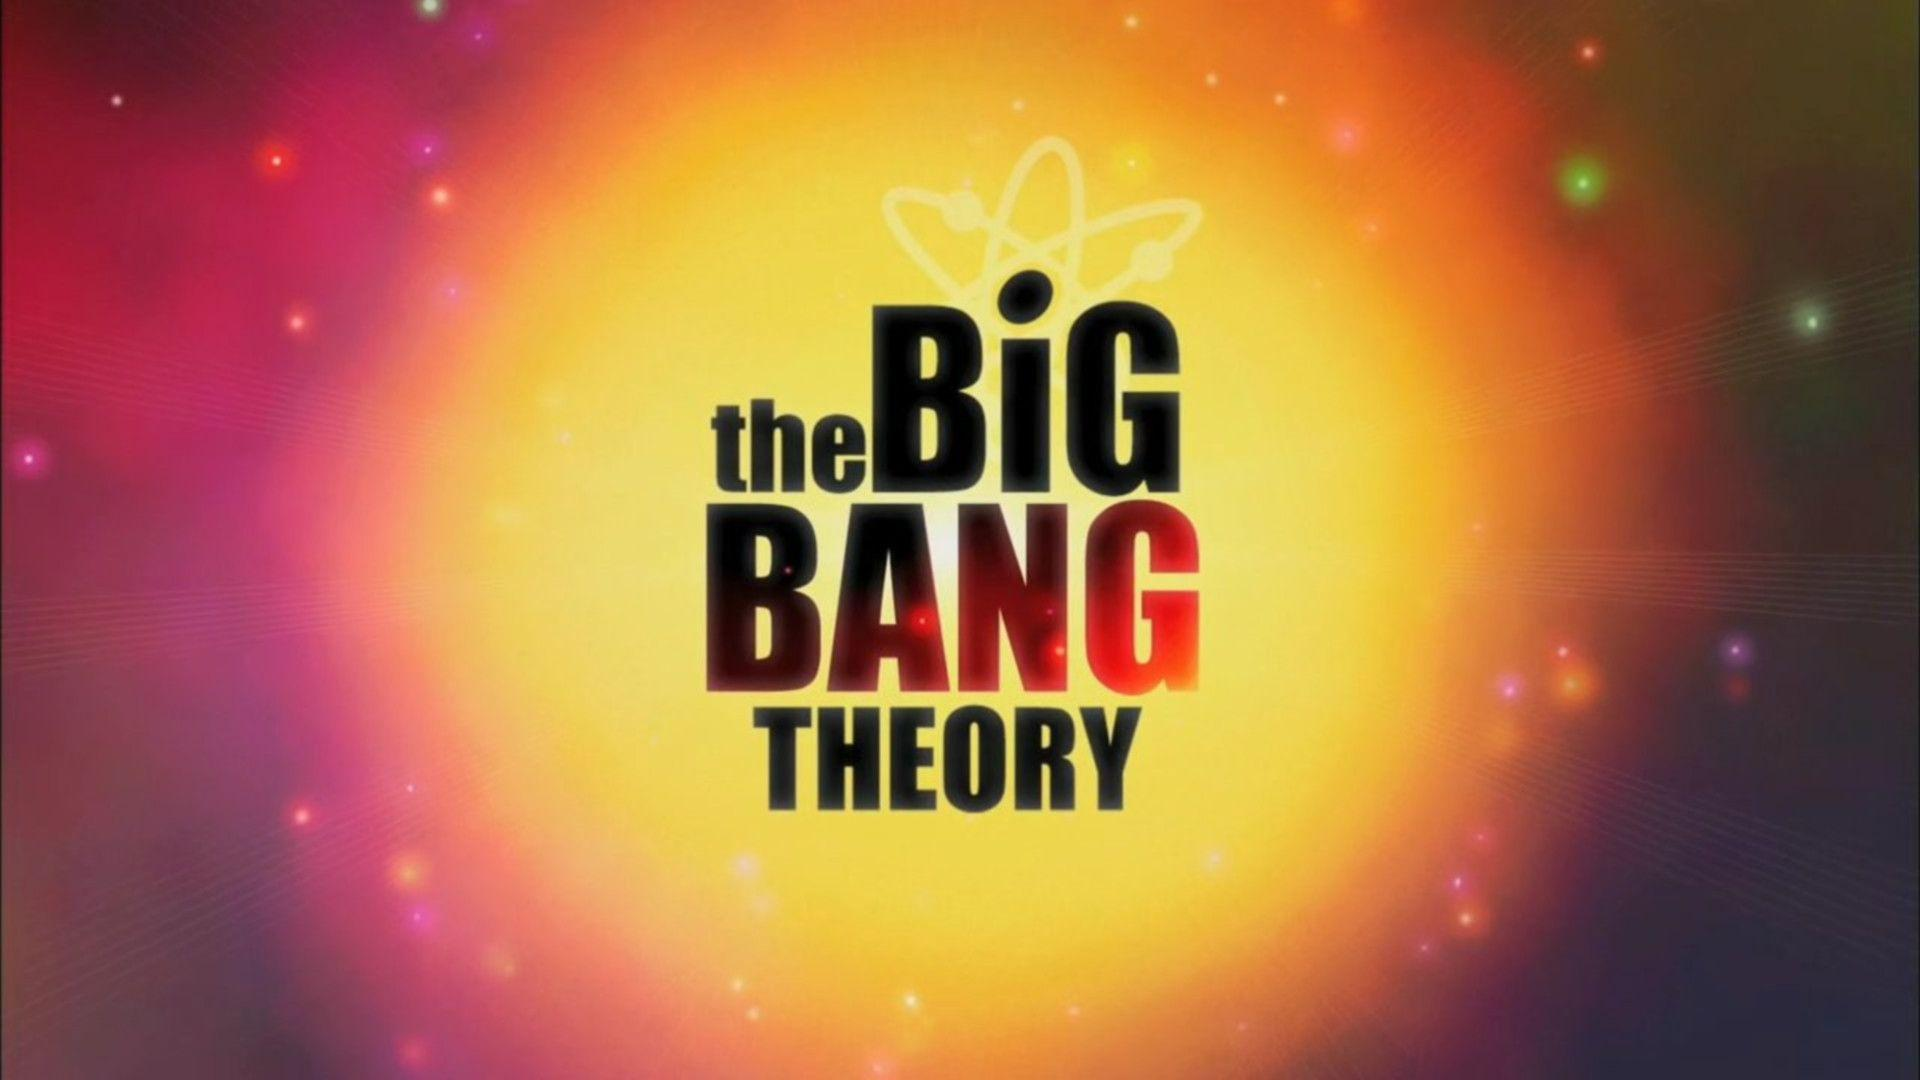 Fonds d&The Big Bang Theory : tous les wallpapers The Big